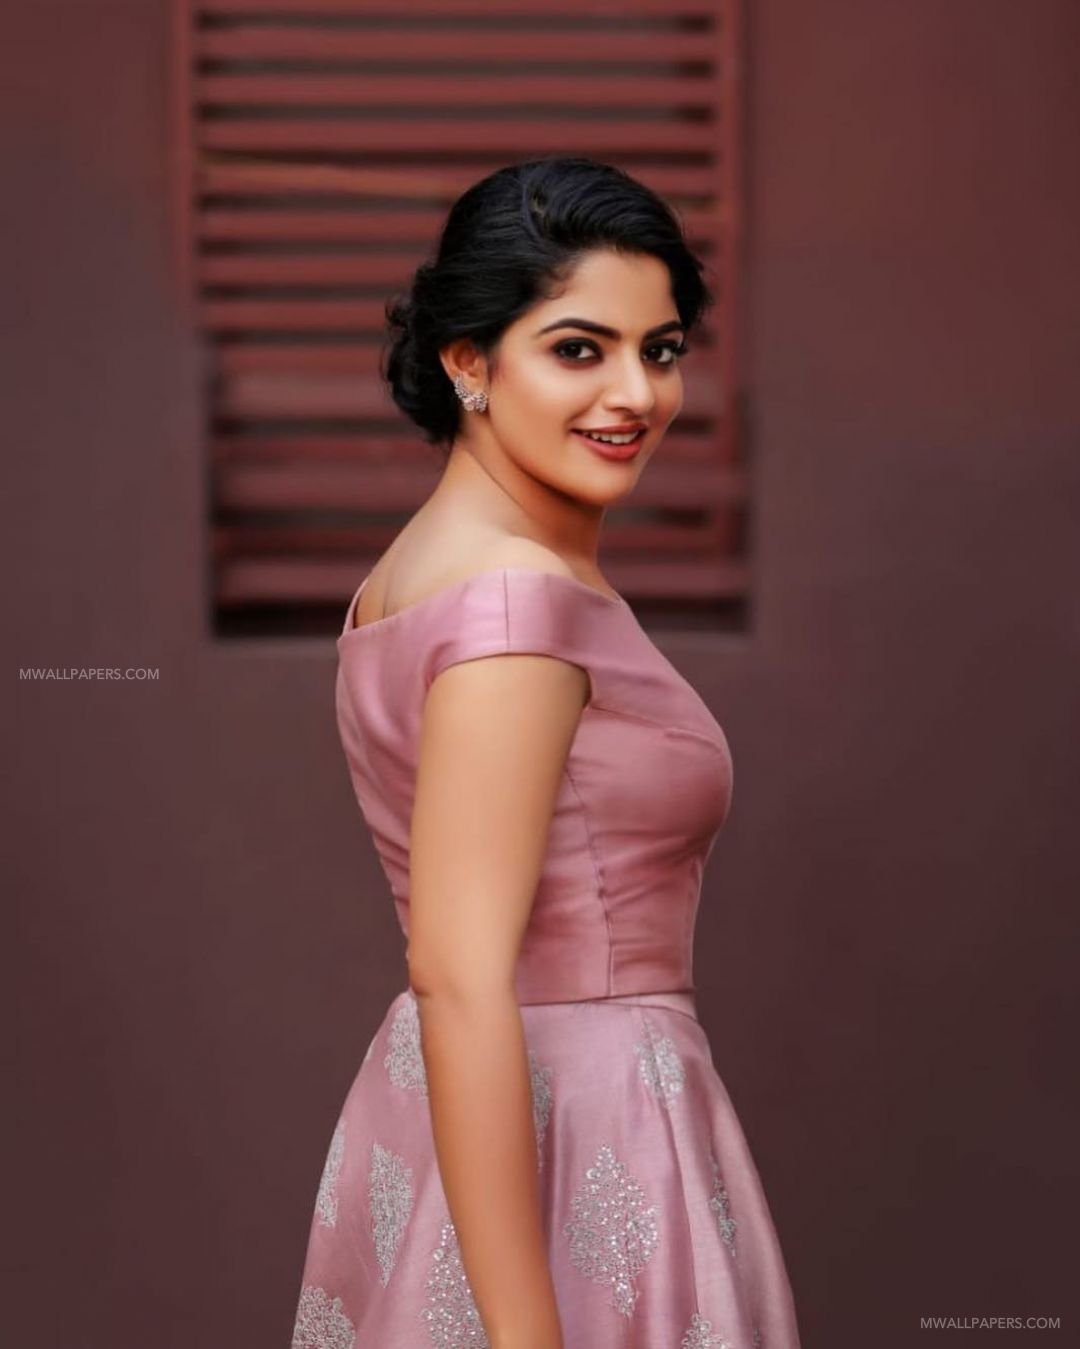 Nikhila Vimal HD Wallpapers (Desktop Background / Android / iPhone) (1080p, 4k) (42554) - Nikhila Vimal